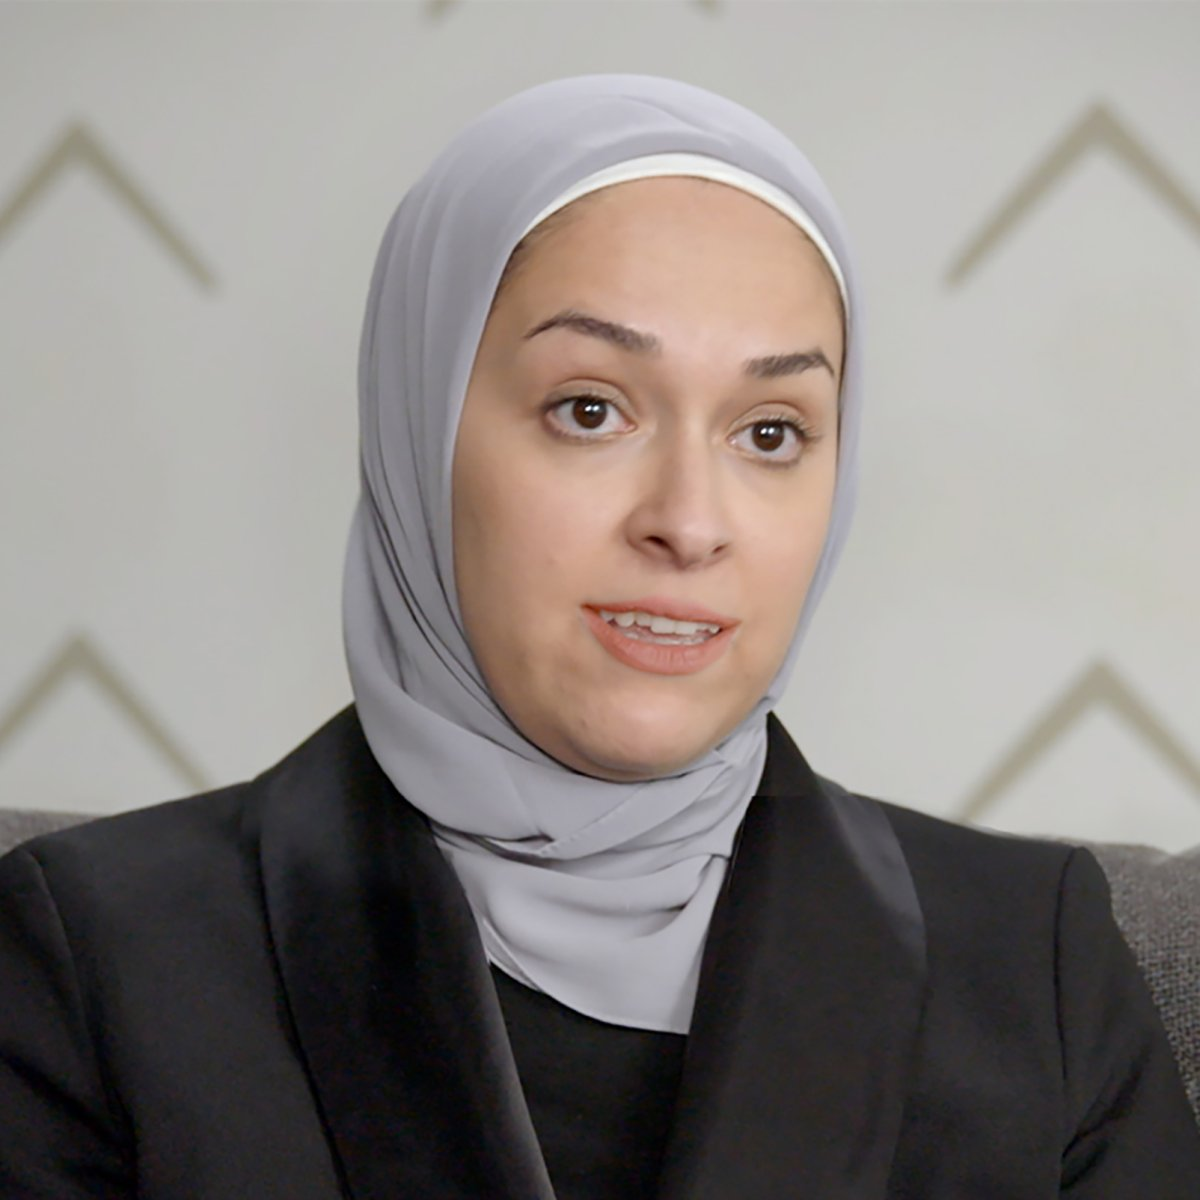 american-voices-shahd-asaly